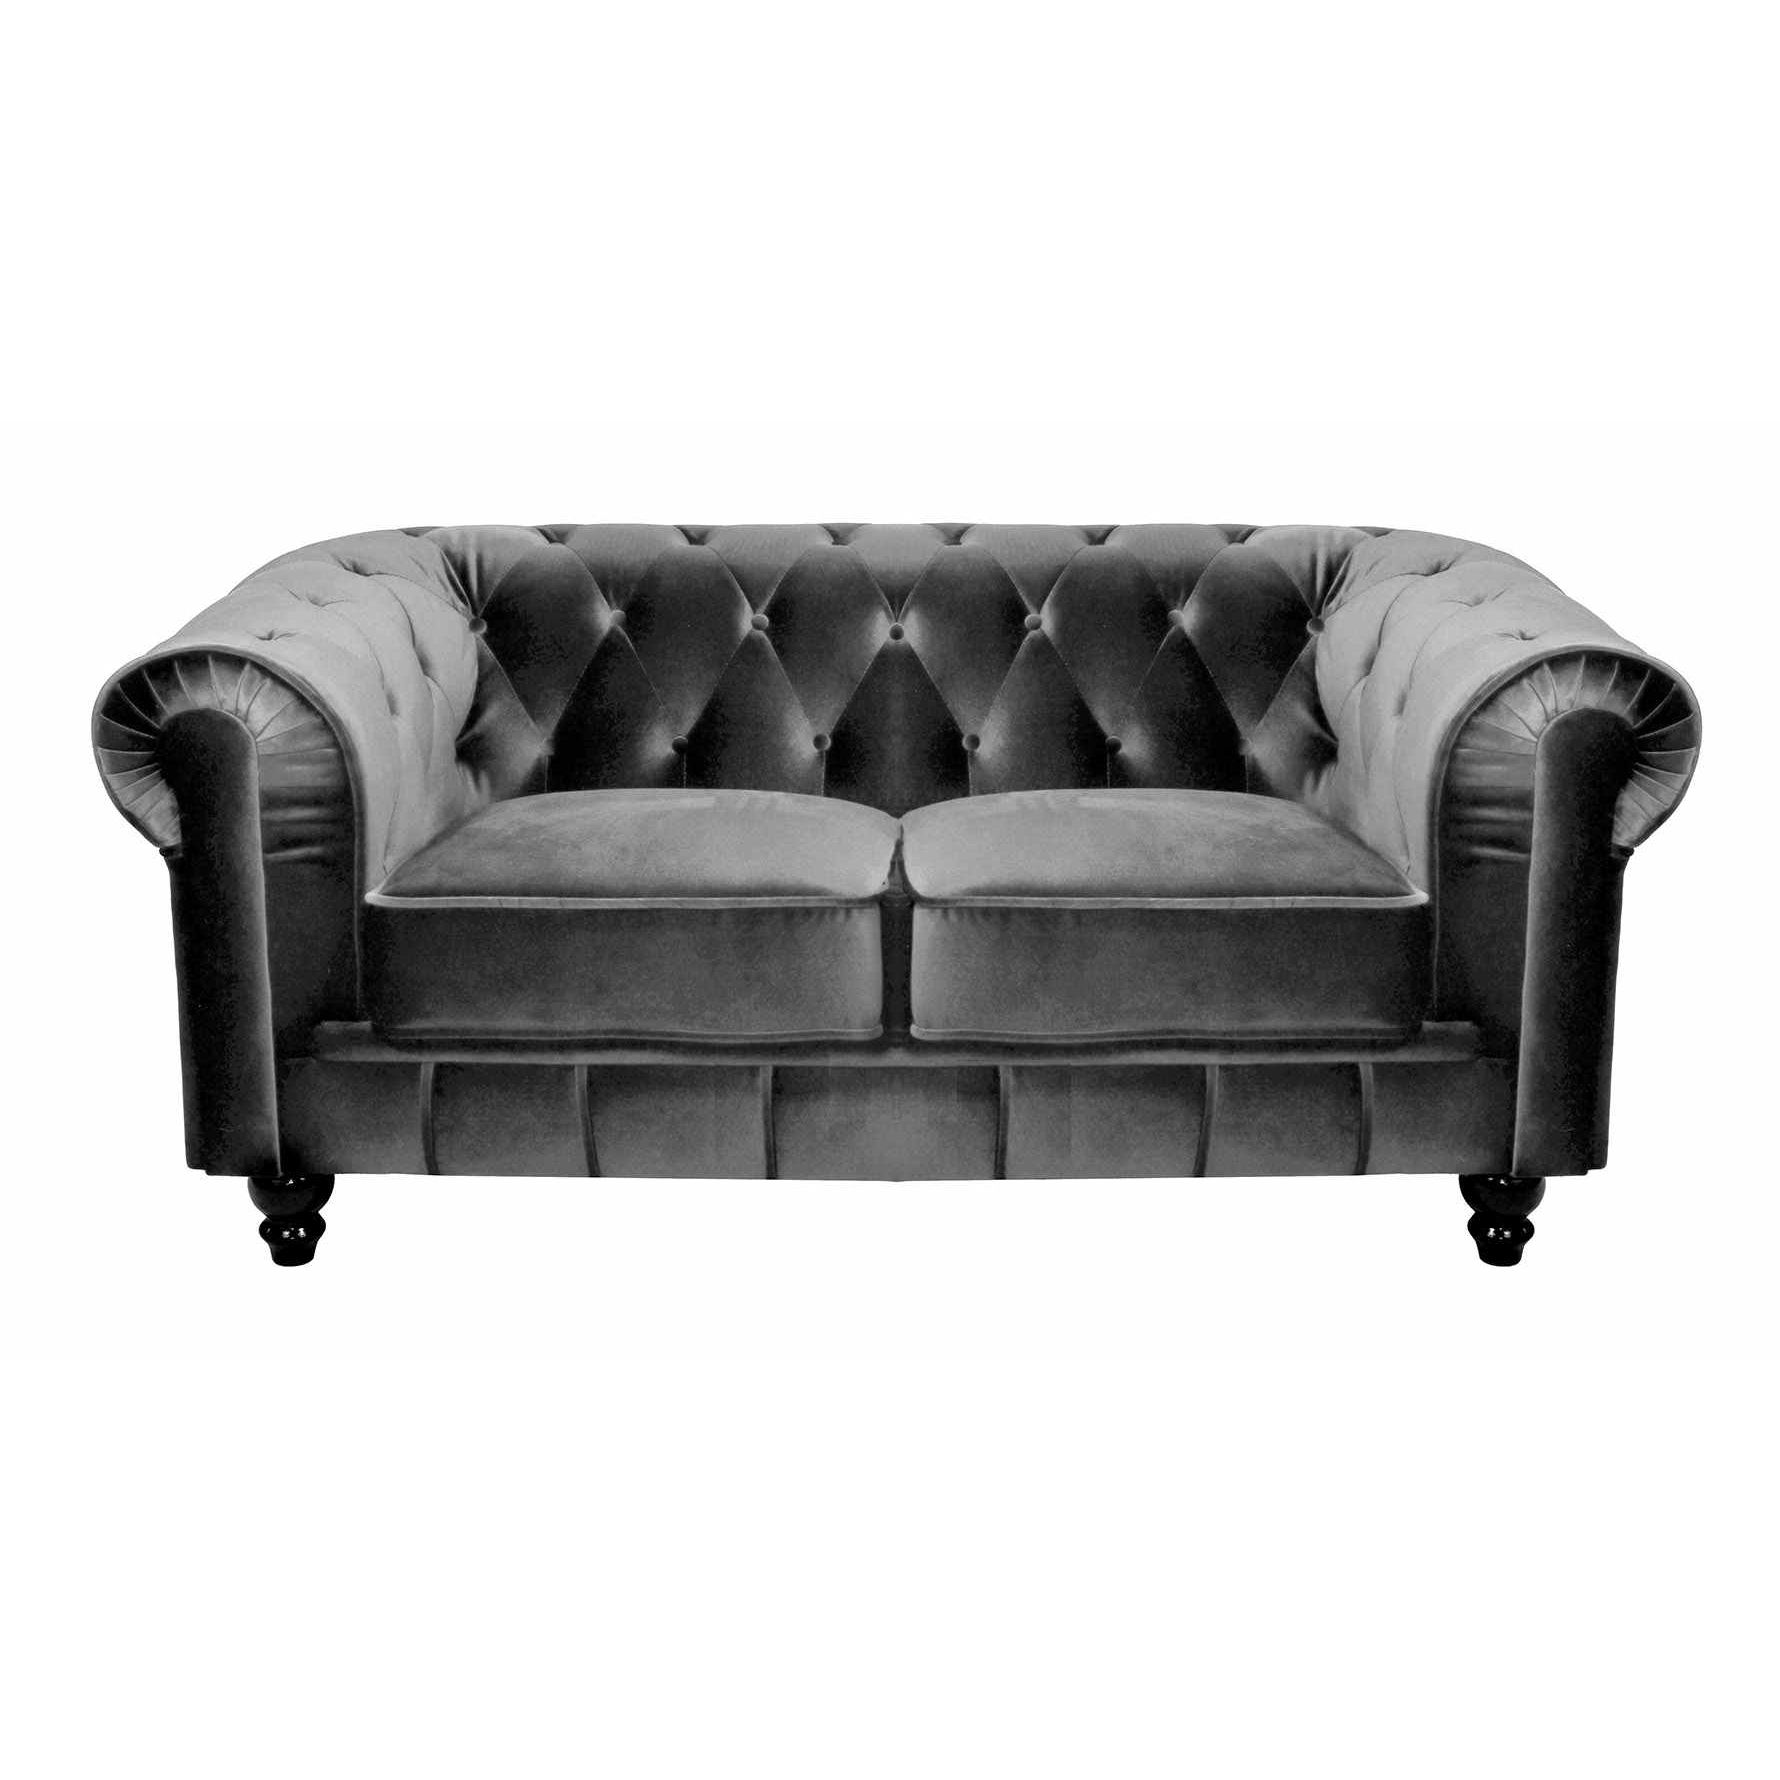 canap chesterfield convertible 2 places id e inspirante pour la conception de la. Black Bedroom Furniture Sets. Home Design Ideas